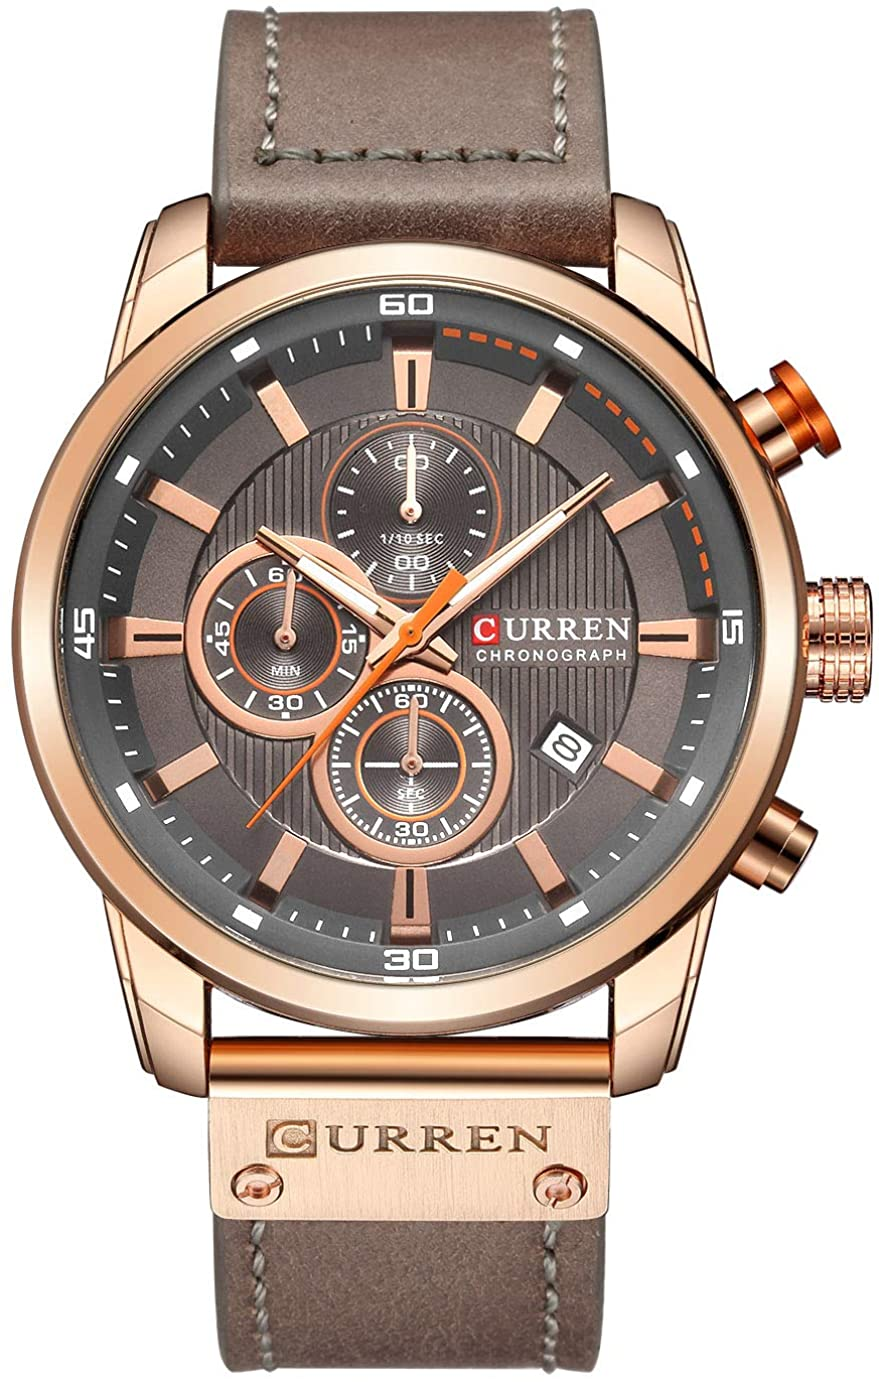 Mens Leather Strap Watches Classic Casual Dress Stainless Steel Waterproof Chronograph Date Analog Quartz Watch